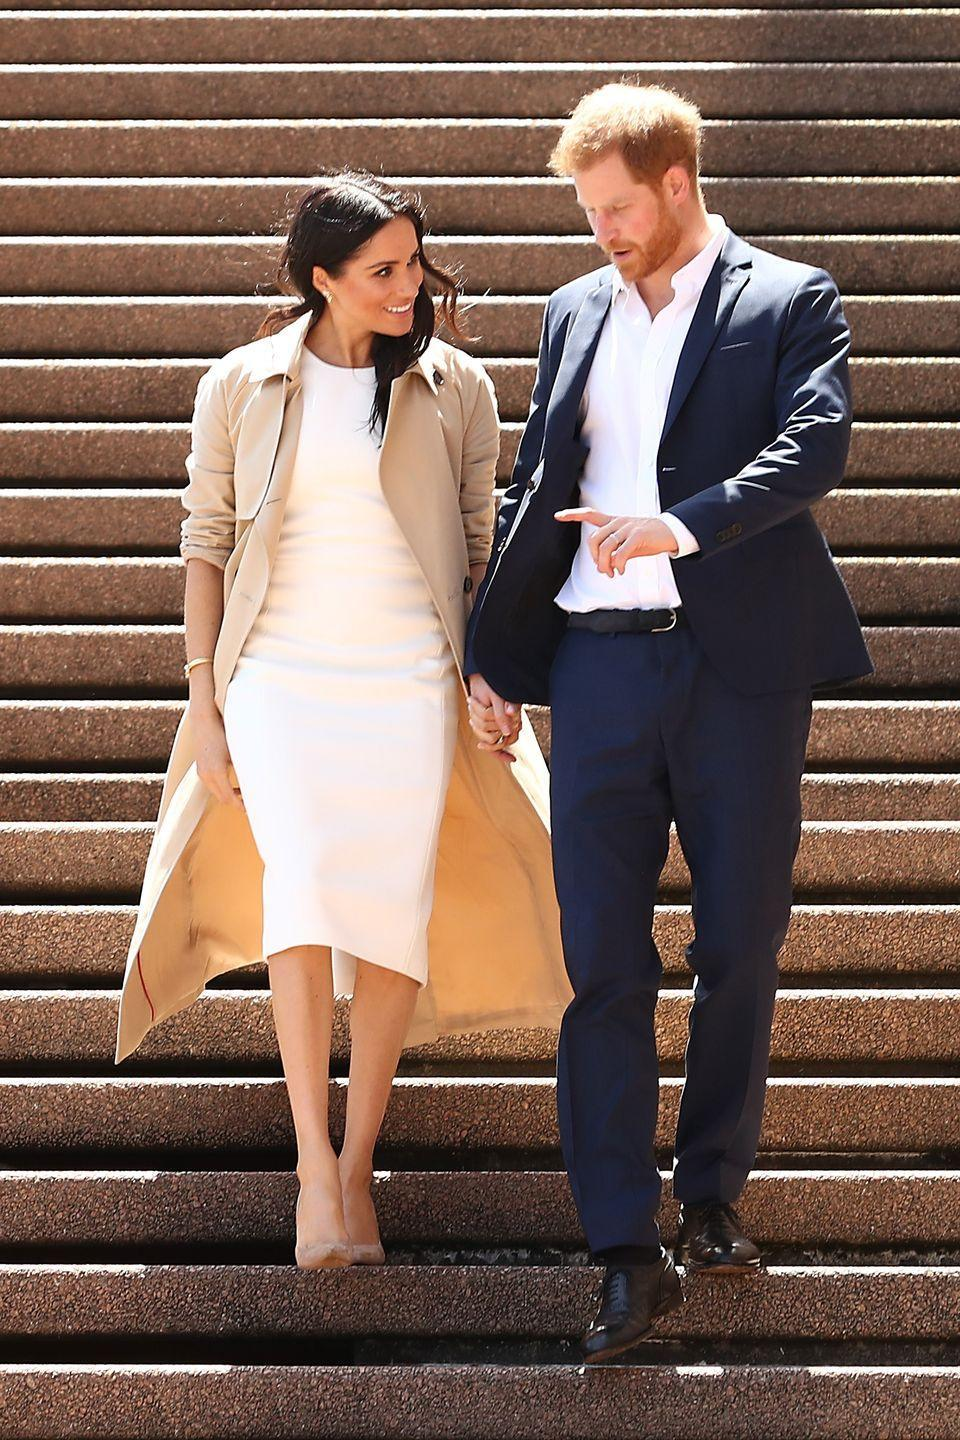 """<p>Stepping out in Sydney, the mother-to-be wore a pair of stunning gold butterfly earrings to complement her form-fitting ivory shift dress (appropriately dubbed the <a href=""""https://karengee.com/blessed-dress.html"""" rel=""""nofollow noopener"""" target=""""_blank"""" data-ylk=""""slk:'Blessed' dress"""" class=""""link rapid-noclick-resp"""">'Blessed' dress</a>) by Sydney-based designer Karen Gee and nude-coloured suede <a href=""""https://www.stuartweitzman.com/products/legend/"""" rel=""""nofollow noopener"""" target=""""_blank"""" data-ylk=""""slk:Stuart Weitzman 'Legend' pumps"""" class=""""link rapid-noclick-resp"""">Stuart Weitzman 'Legend' pumps</a>.</p>"""